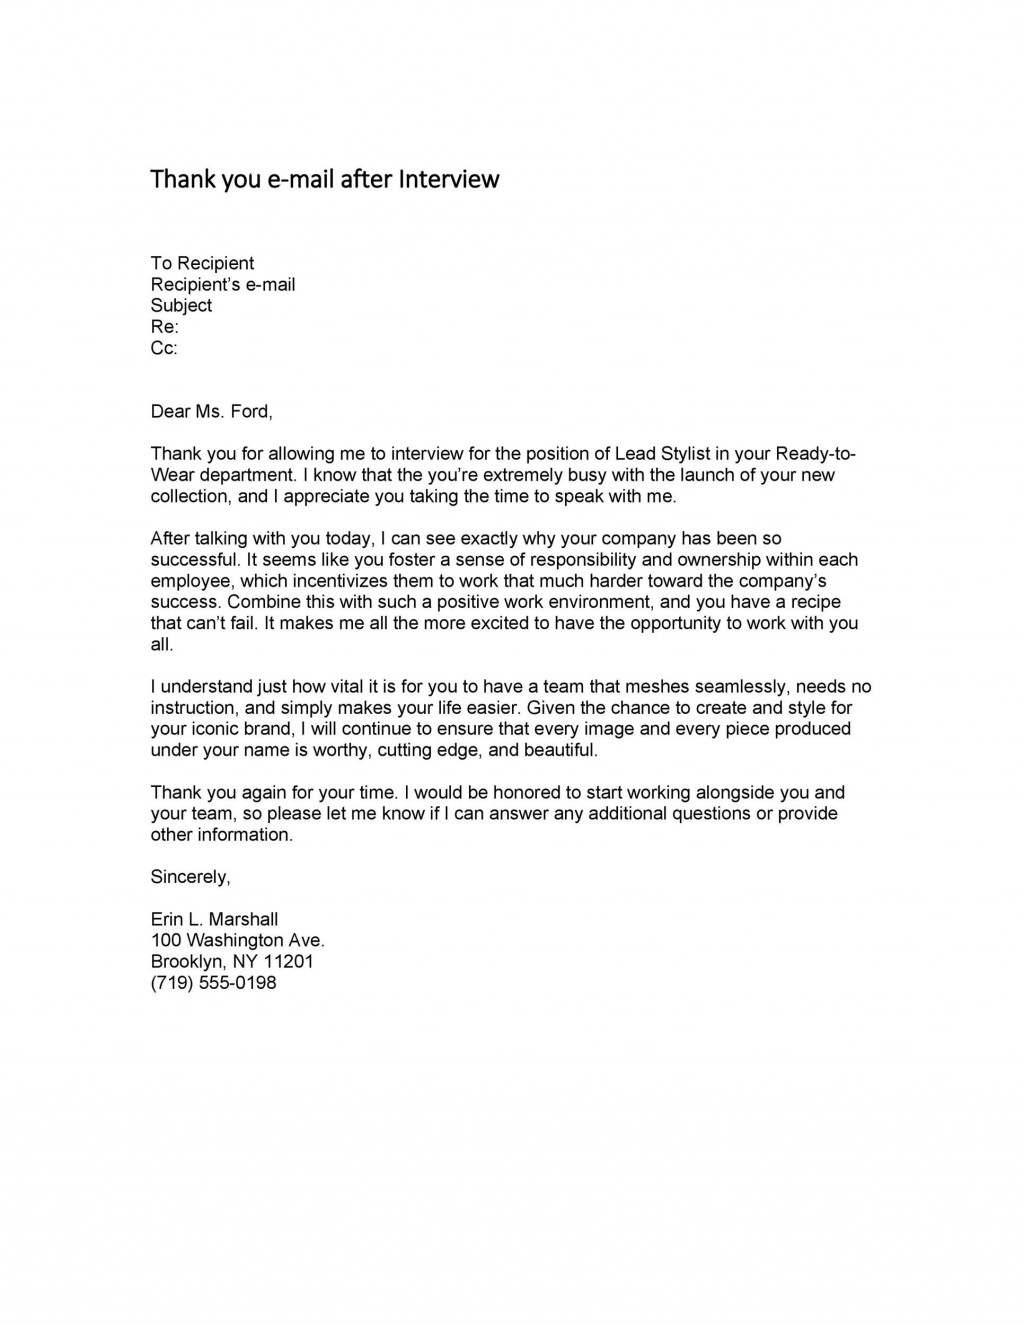 009 Beautiful Interview Thank You Email Template Picture  After Phone Sample 2nd PostLarge